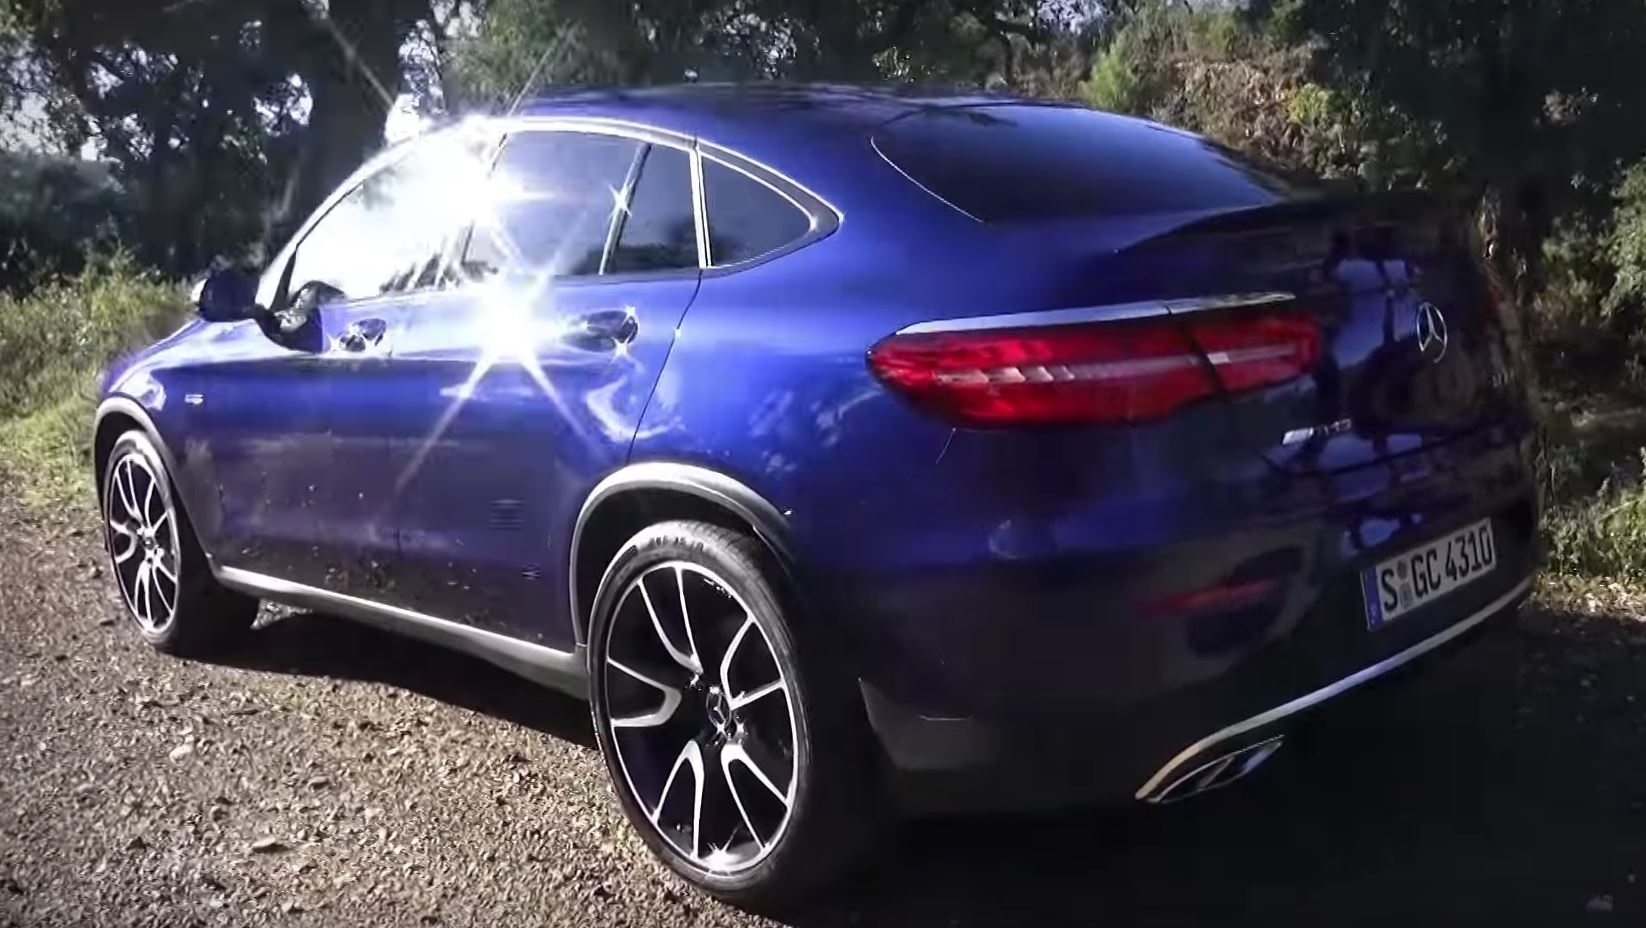 Shmee150 Asks If His Dad Should Buy a Mercedes-AMG GLC 43